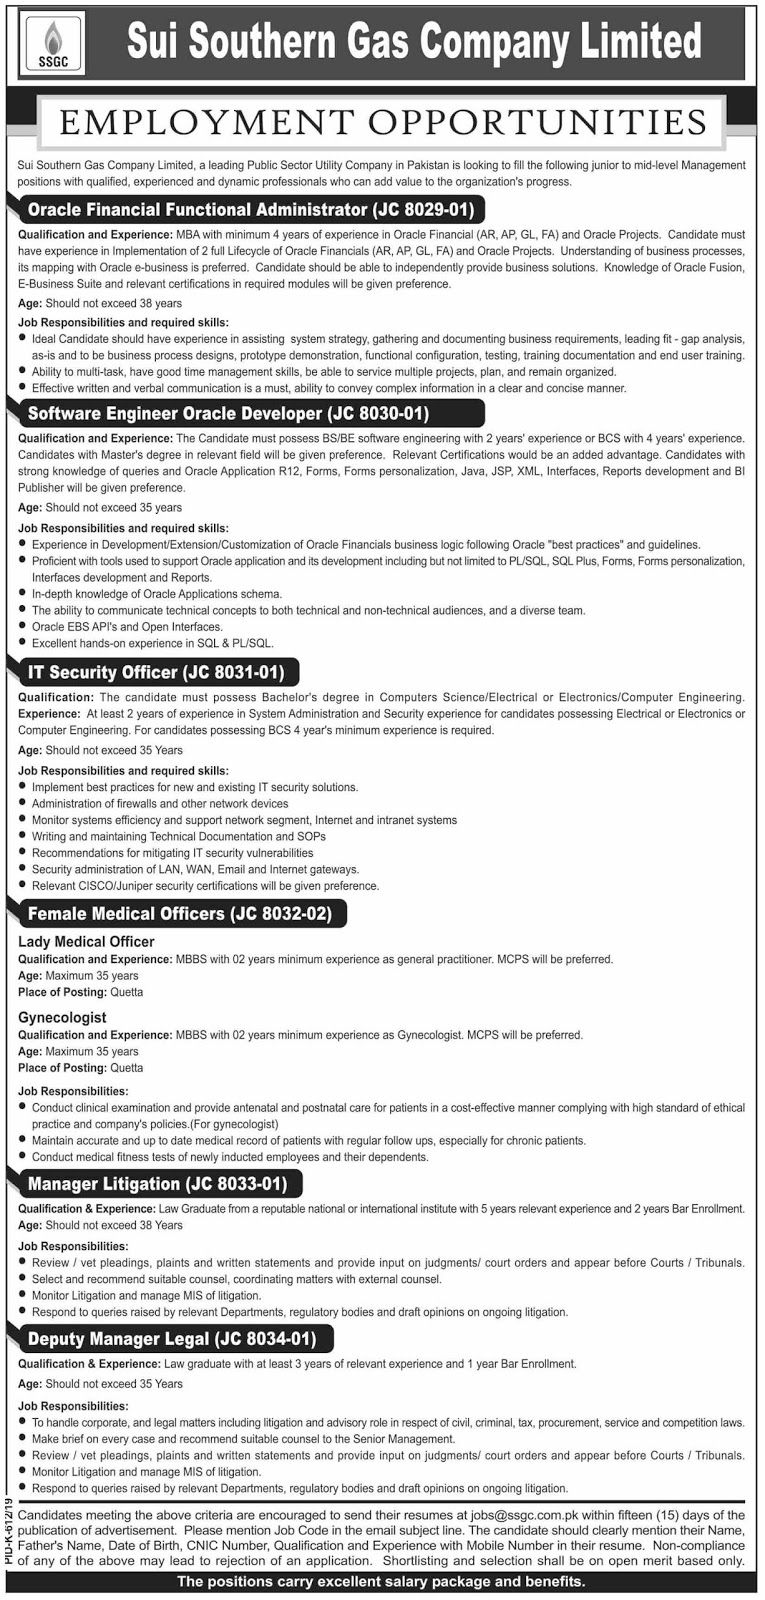 Advertisement for Sui Southern Gas Company Limited Jobs